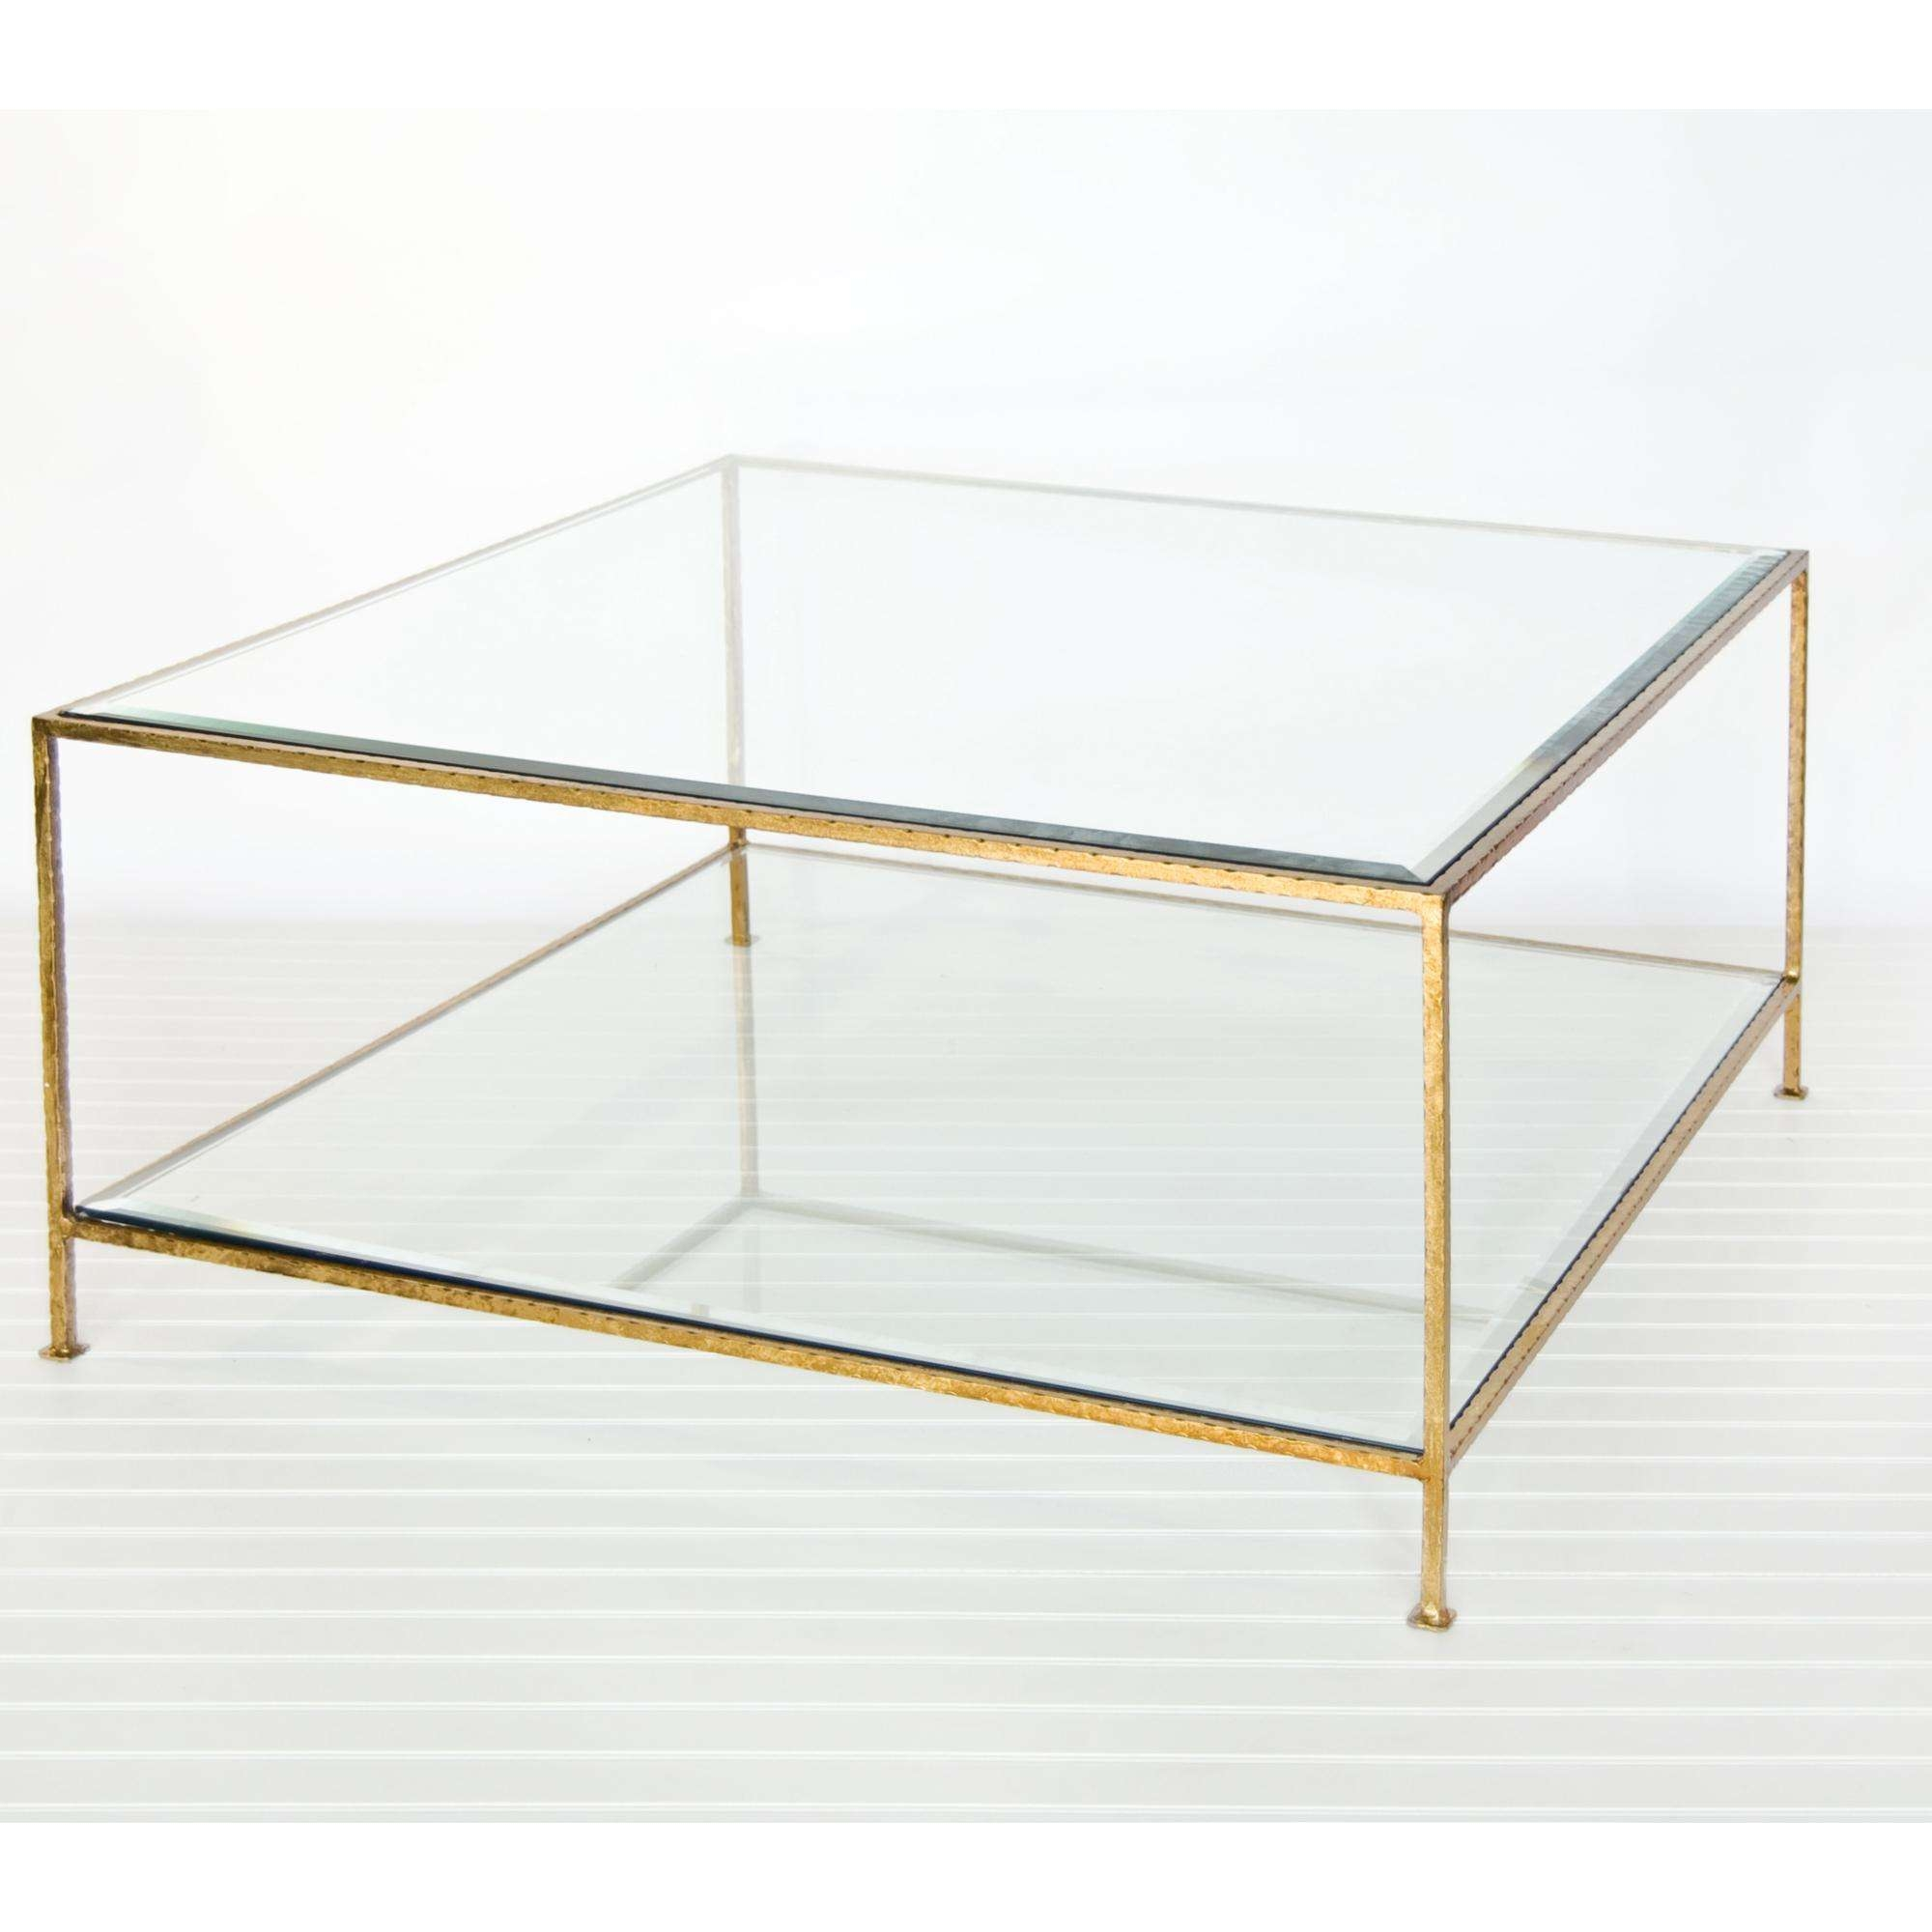 Coffee Tables Ideas: Sensational Glass And Gold Coffee Table Inside Current Glass Gold Coffee Tables (View 8 of 20)